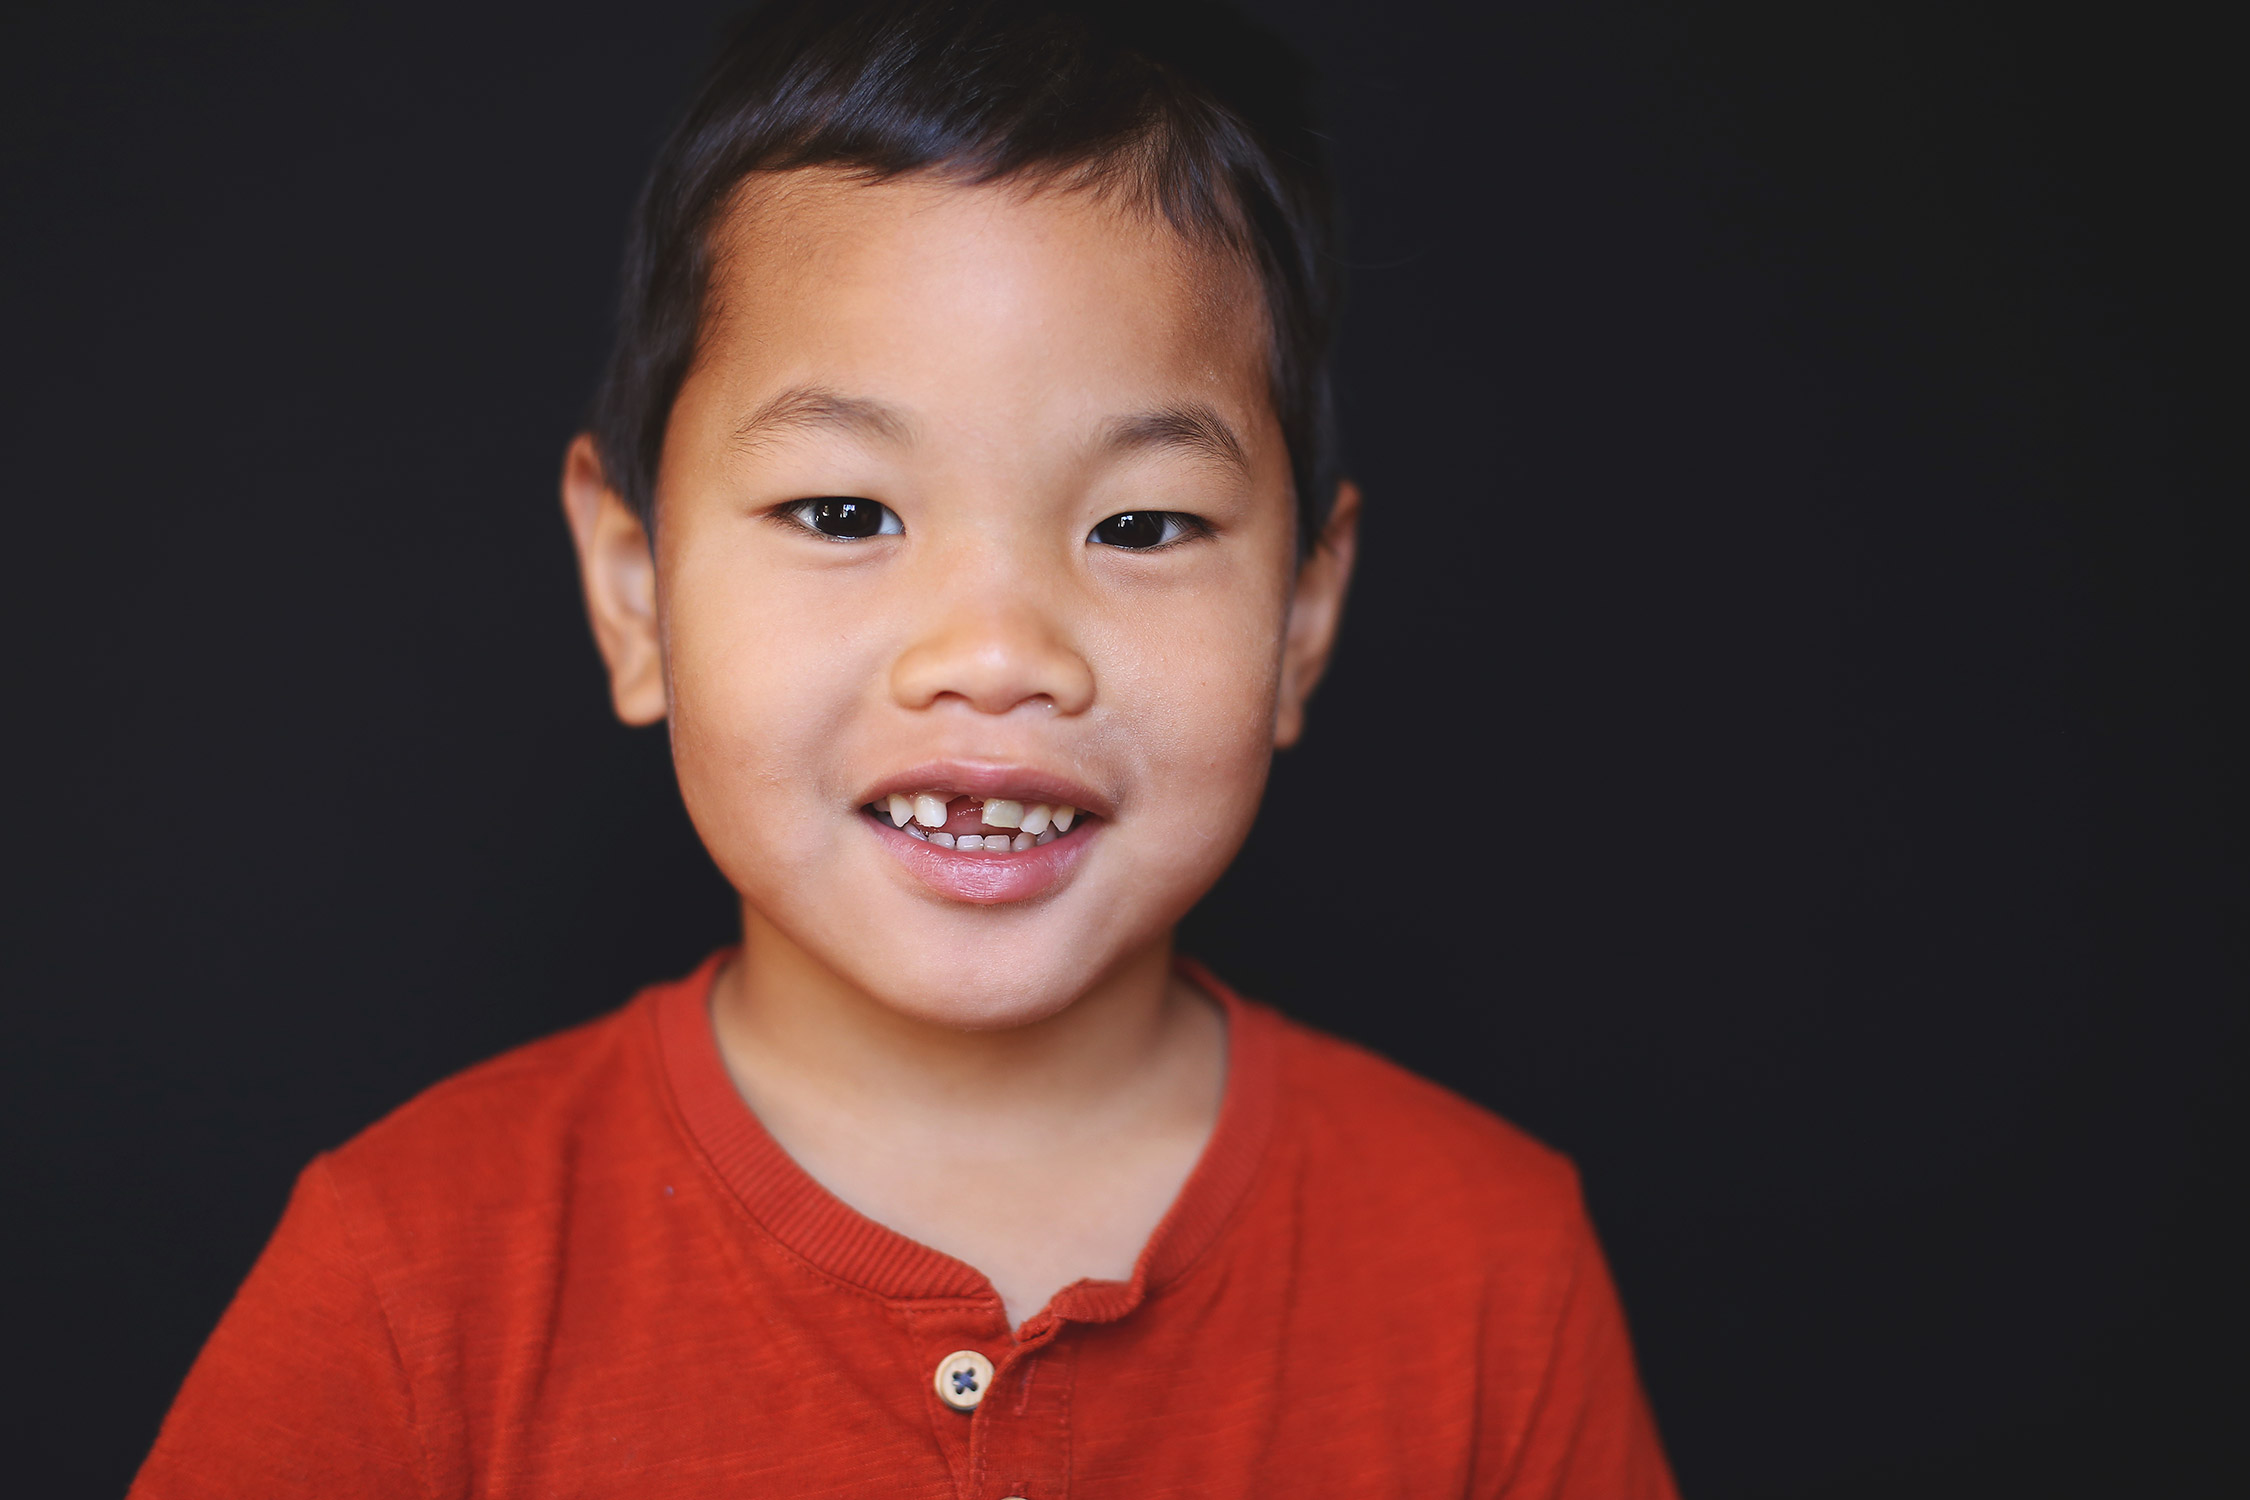 Toddler boy smiling looking at camera   St. Louis School Photographer